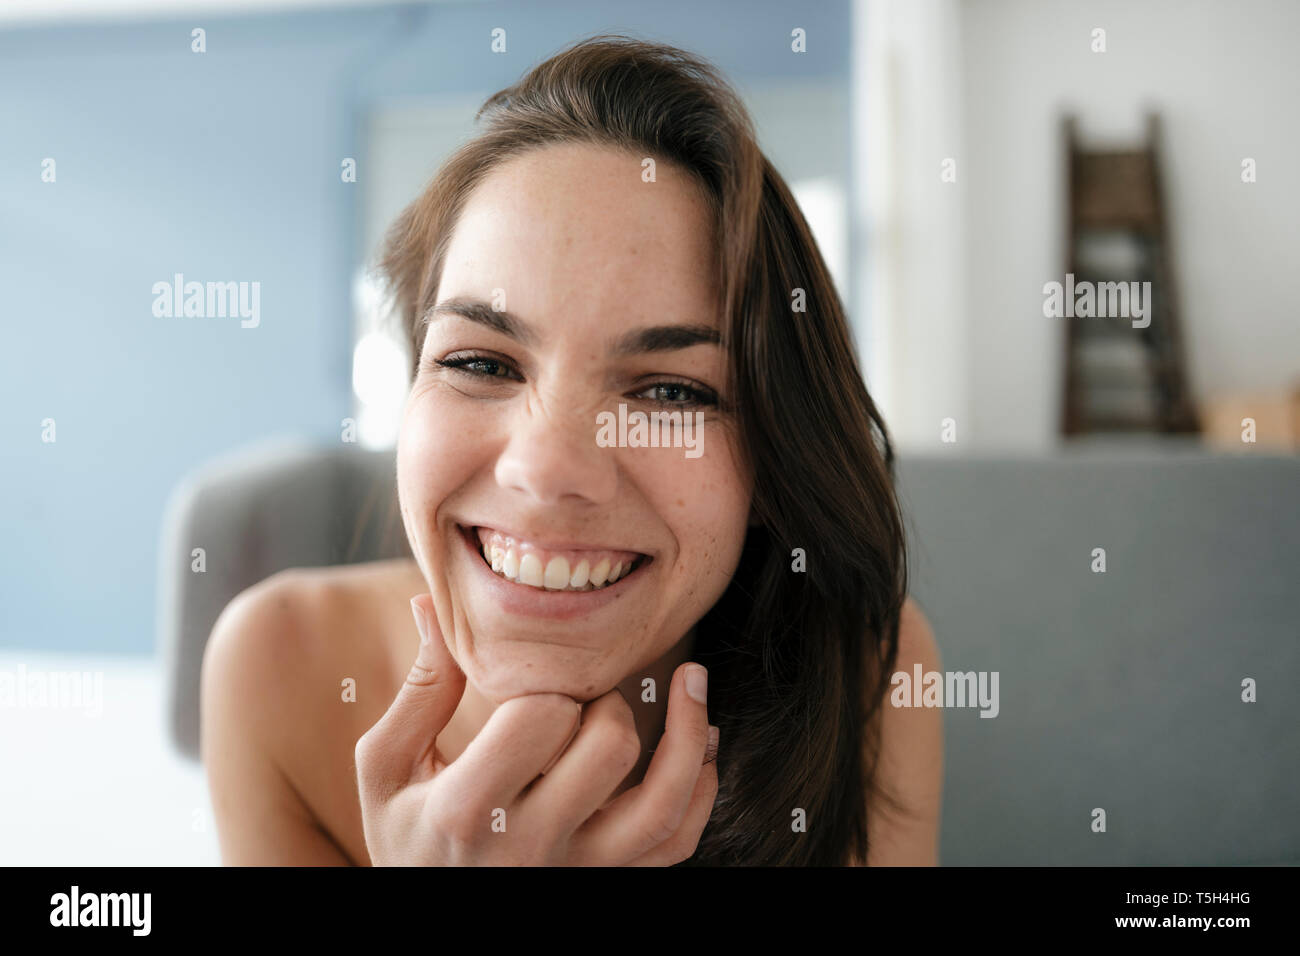 Portrait of a pretty woman with bare shoulders, smiling - Stock Image